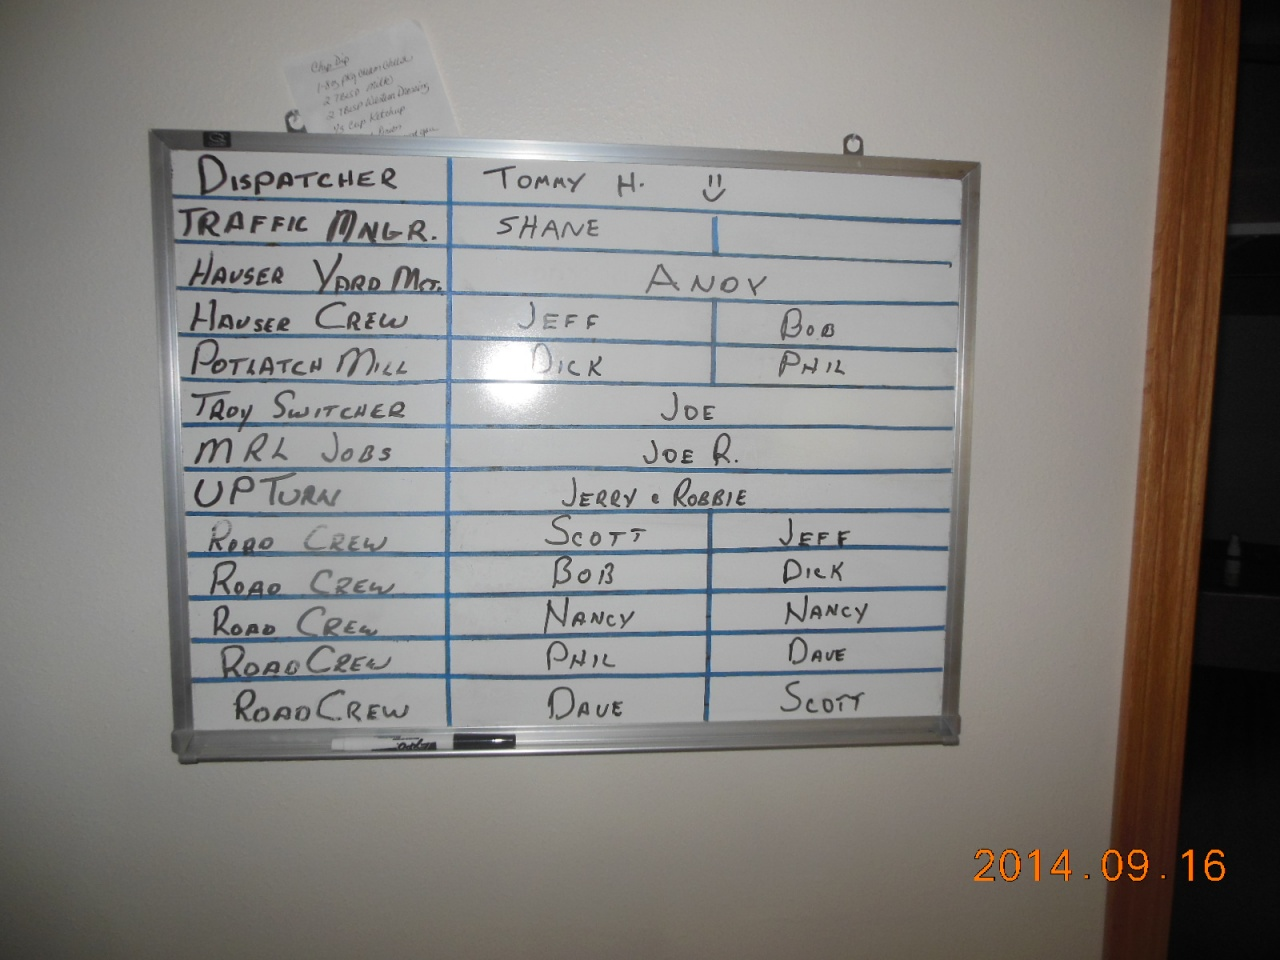 Saturdays call board